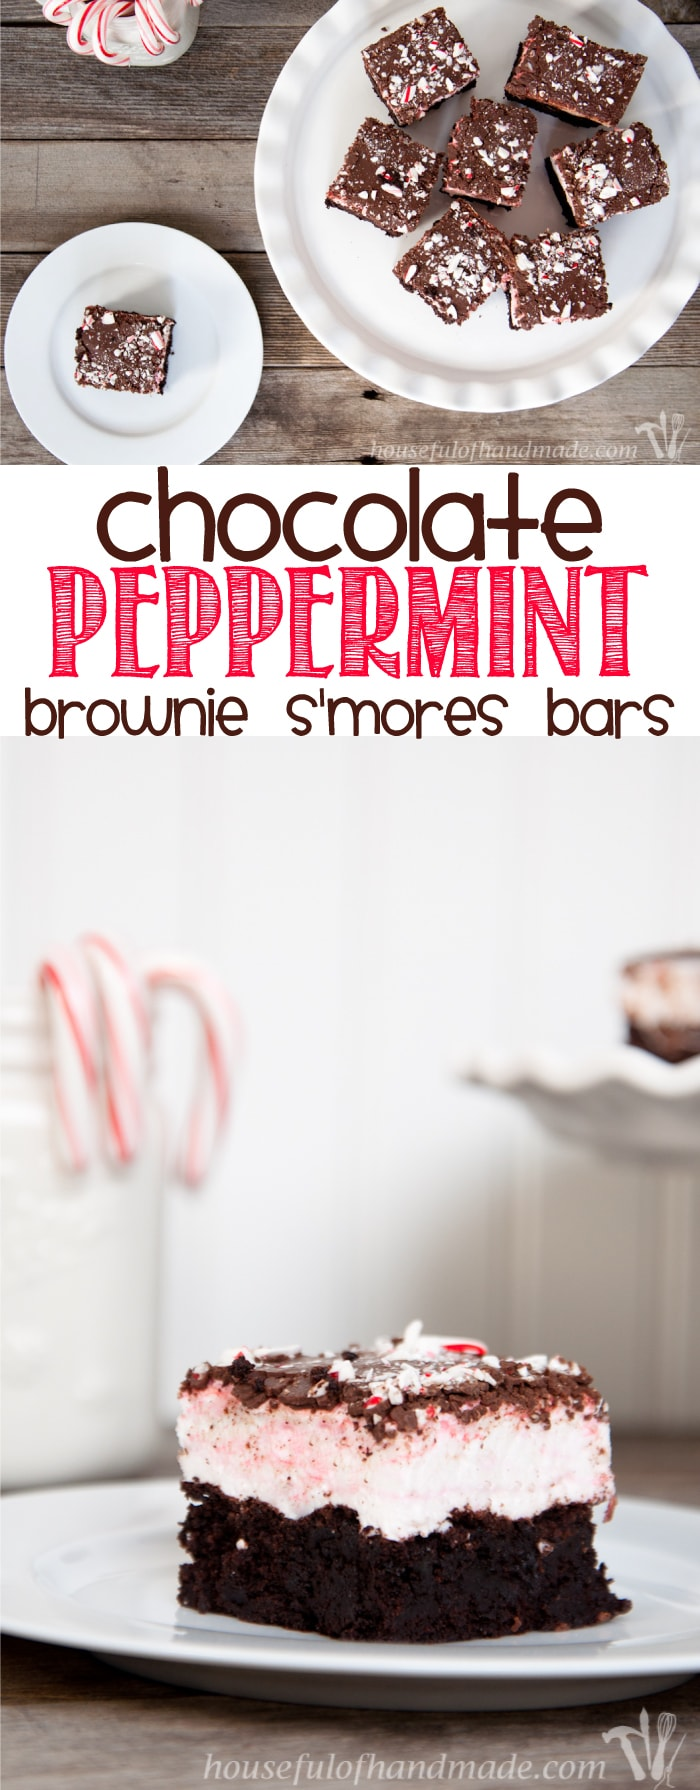 These bars are perfect for Christmas baking. The two best flavors of the season make these Chocolate Peppermint Brownie S'mores Bars delicious!   Housefulofhandmade.com